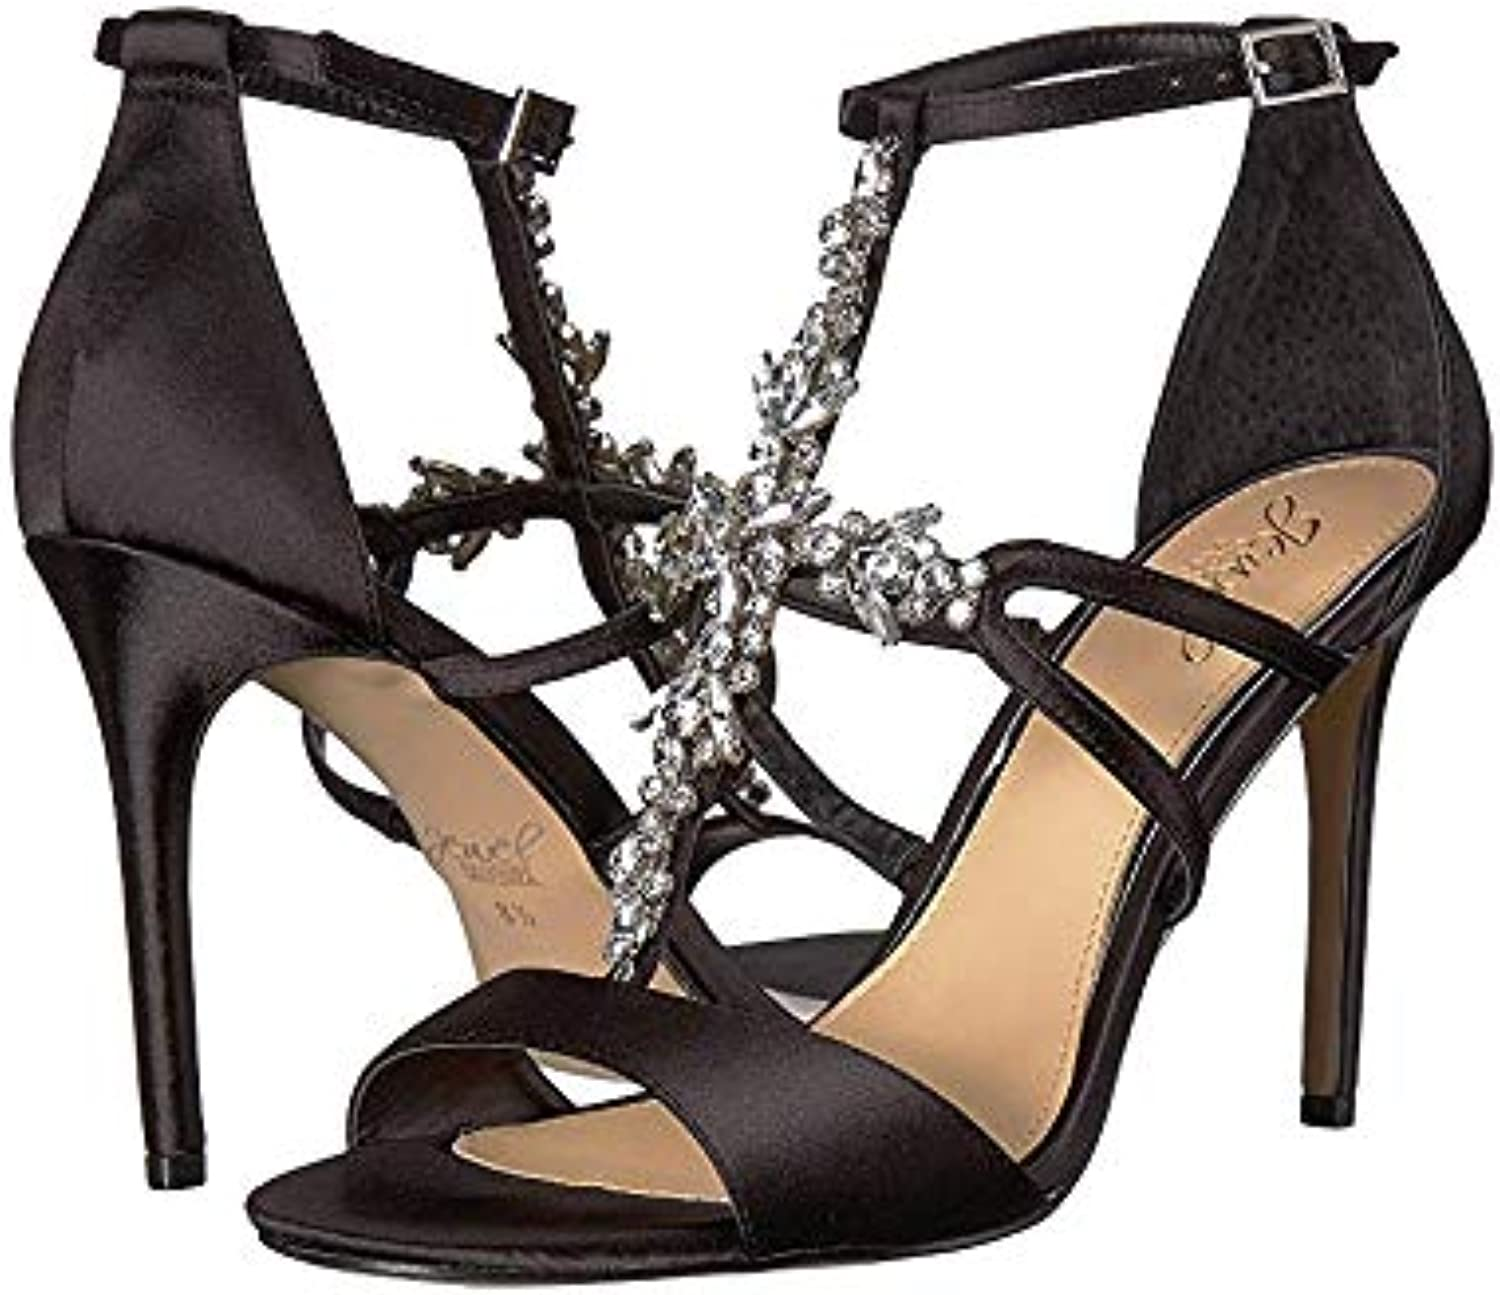 Badgley Badgley Badgley Mishka Jewel Galvin Strappy Evening Sandals, Champagne  extremt låga priser